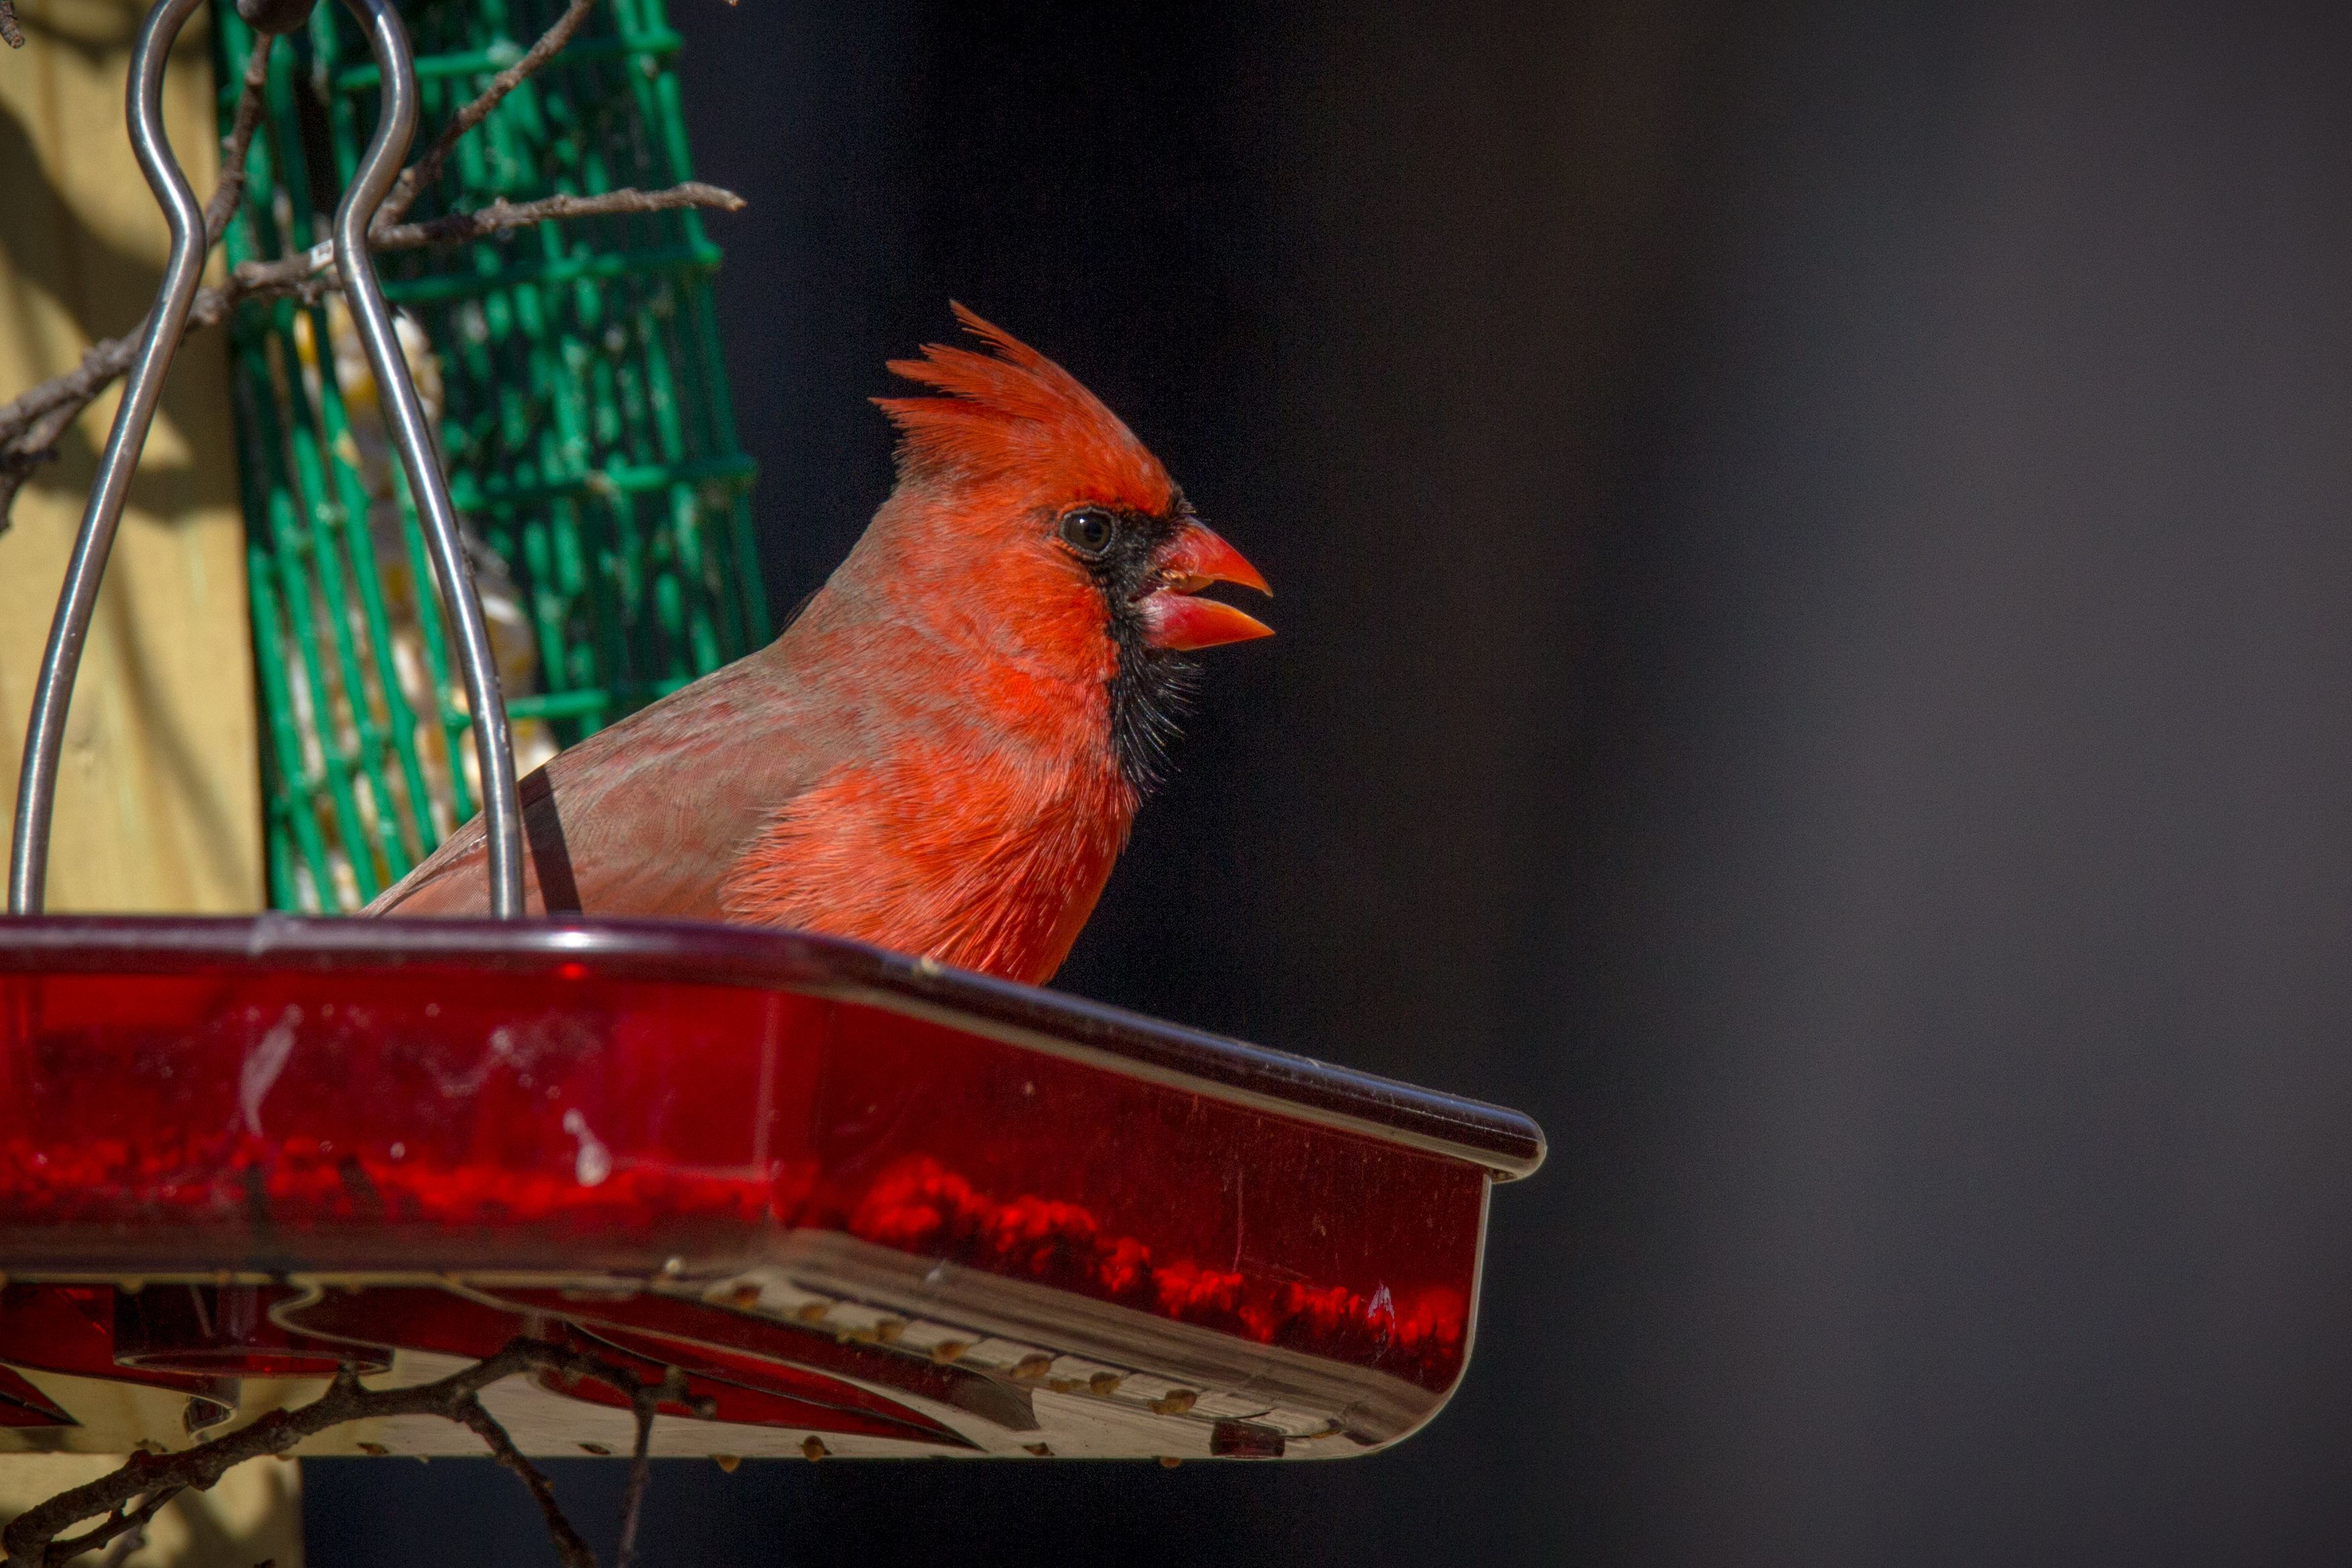 Clean Feeders Provide Impeccable Protection to Keep Birds Healthy